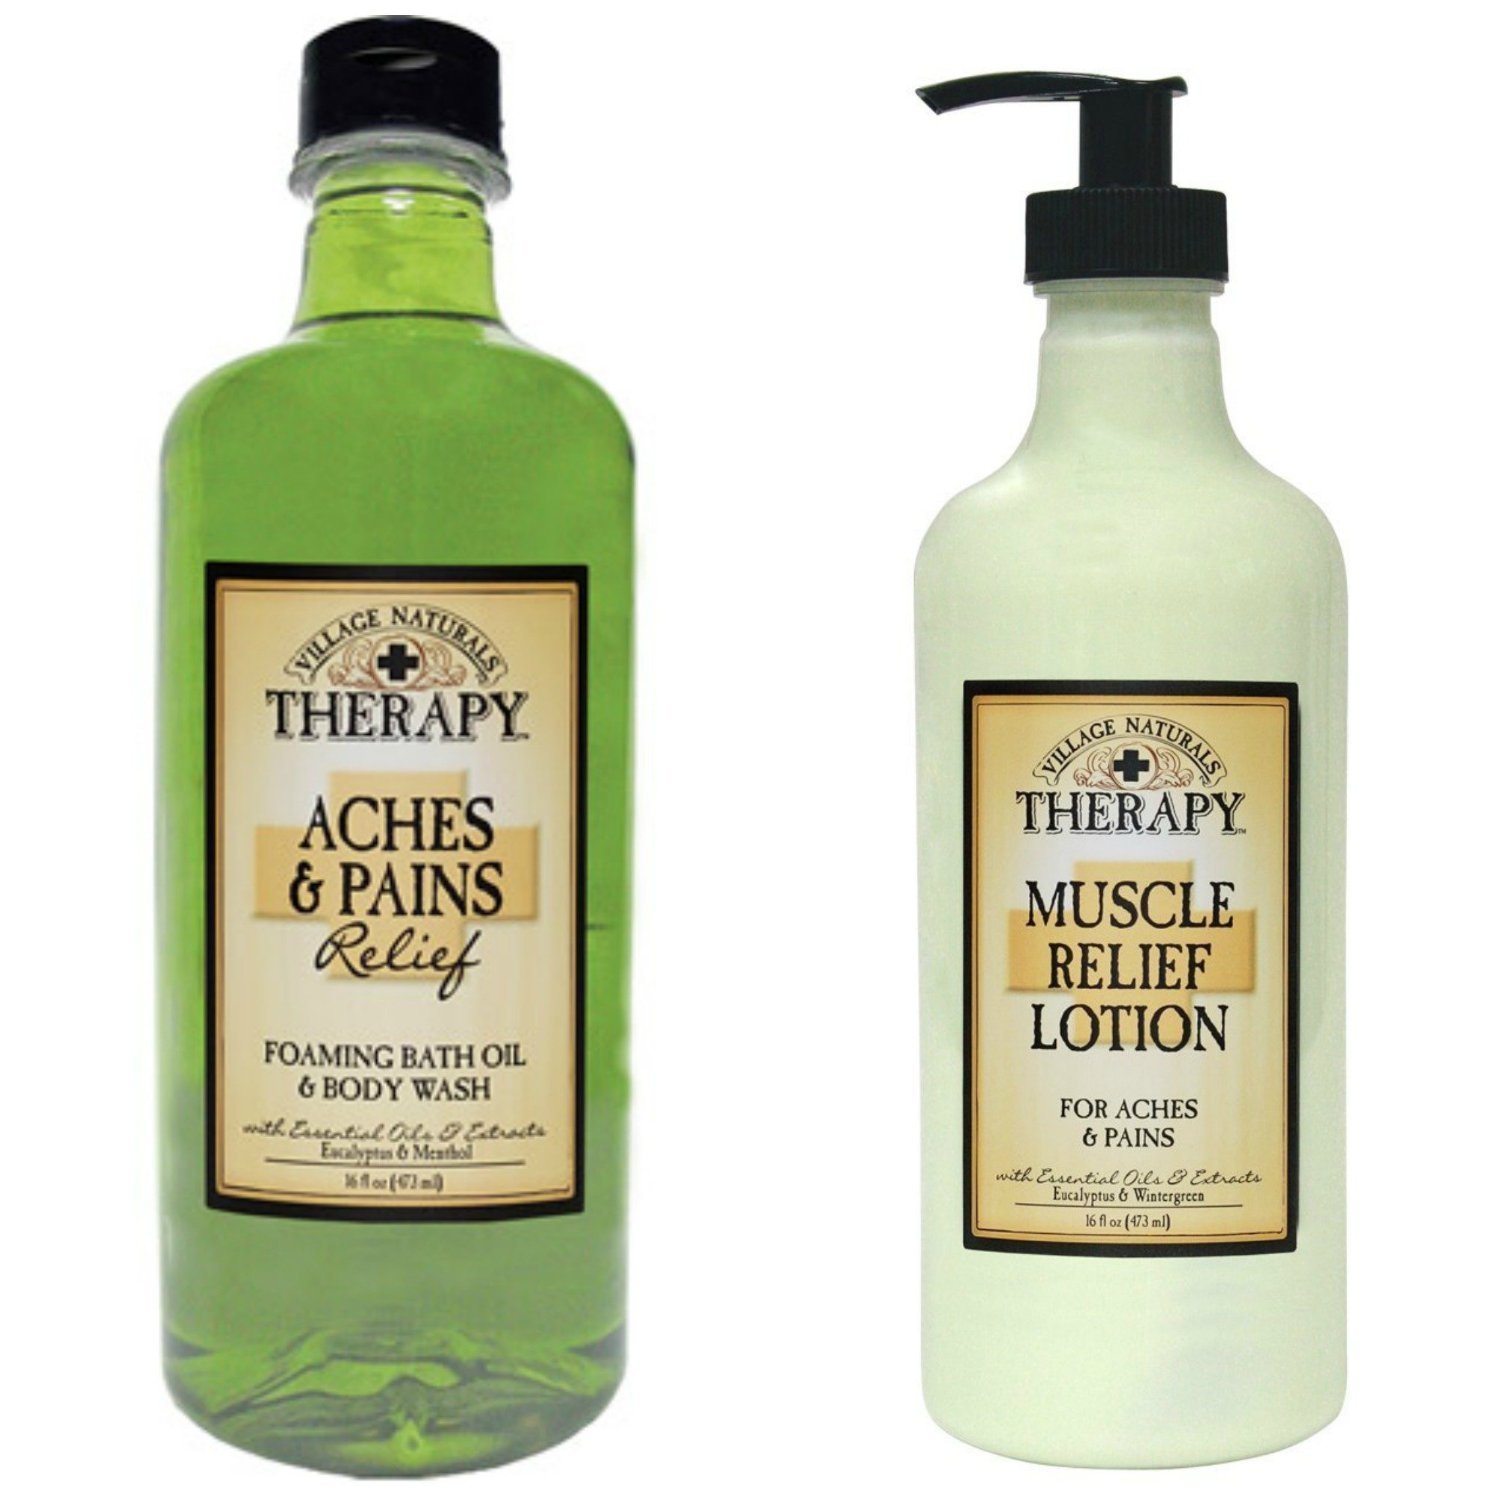 Village Naturals Muscle Aches & Pains Relief Lotion & Foaming Bath Oil Body Wash Relaxing Set by Village Naturals